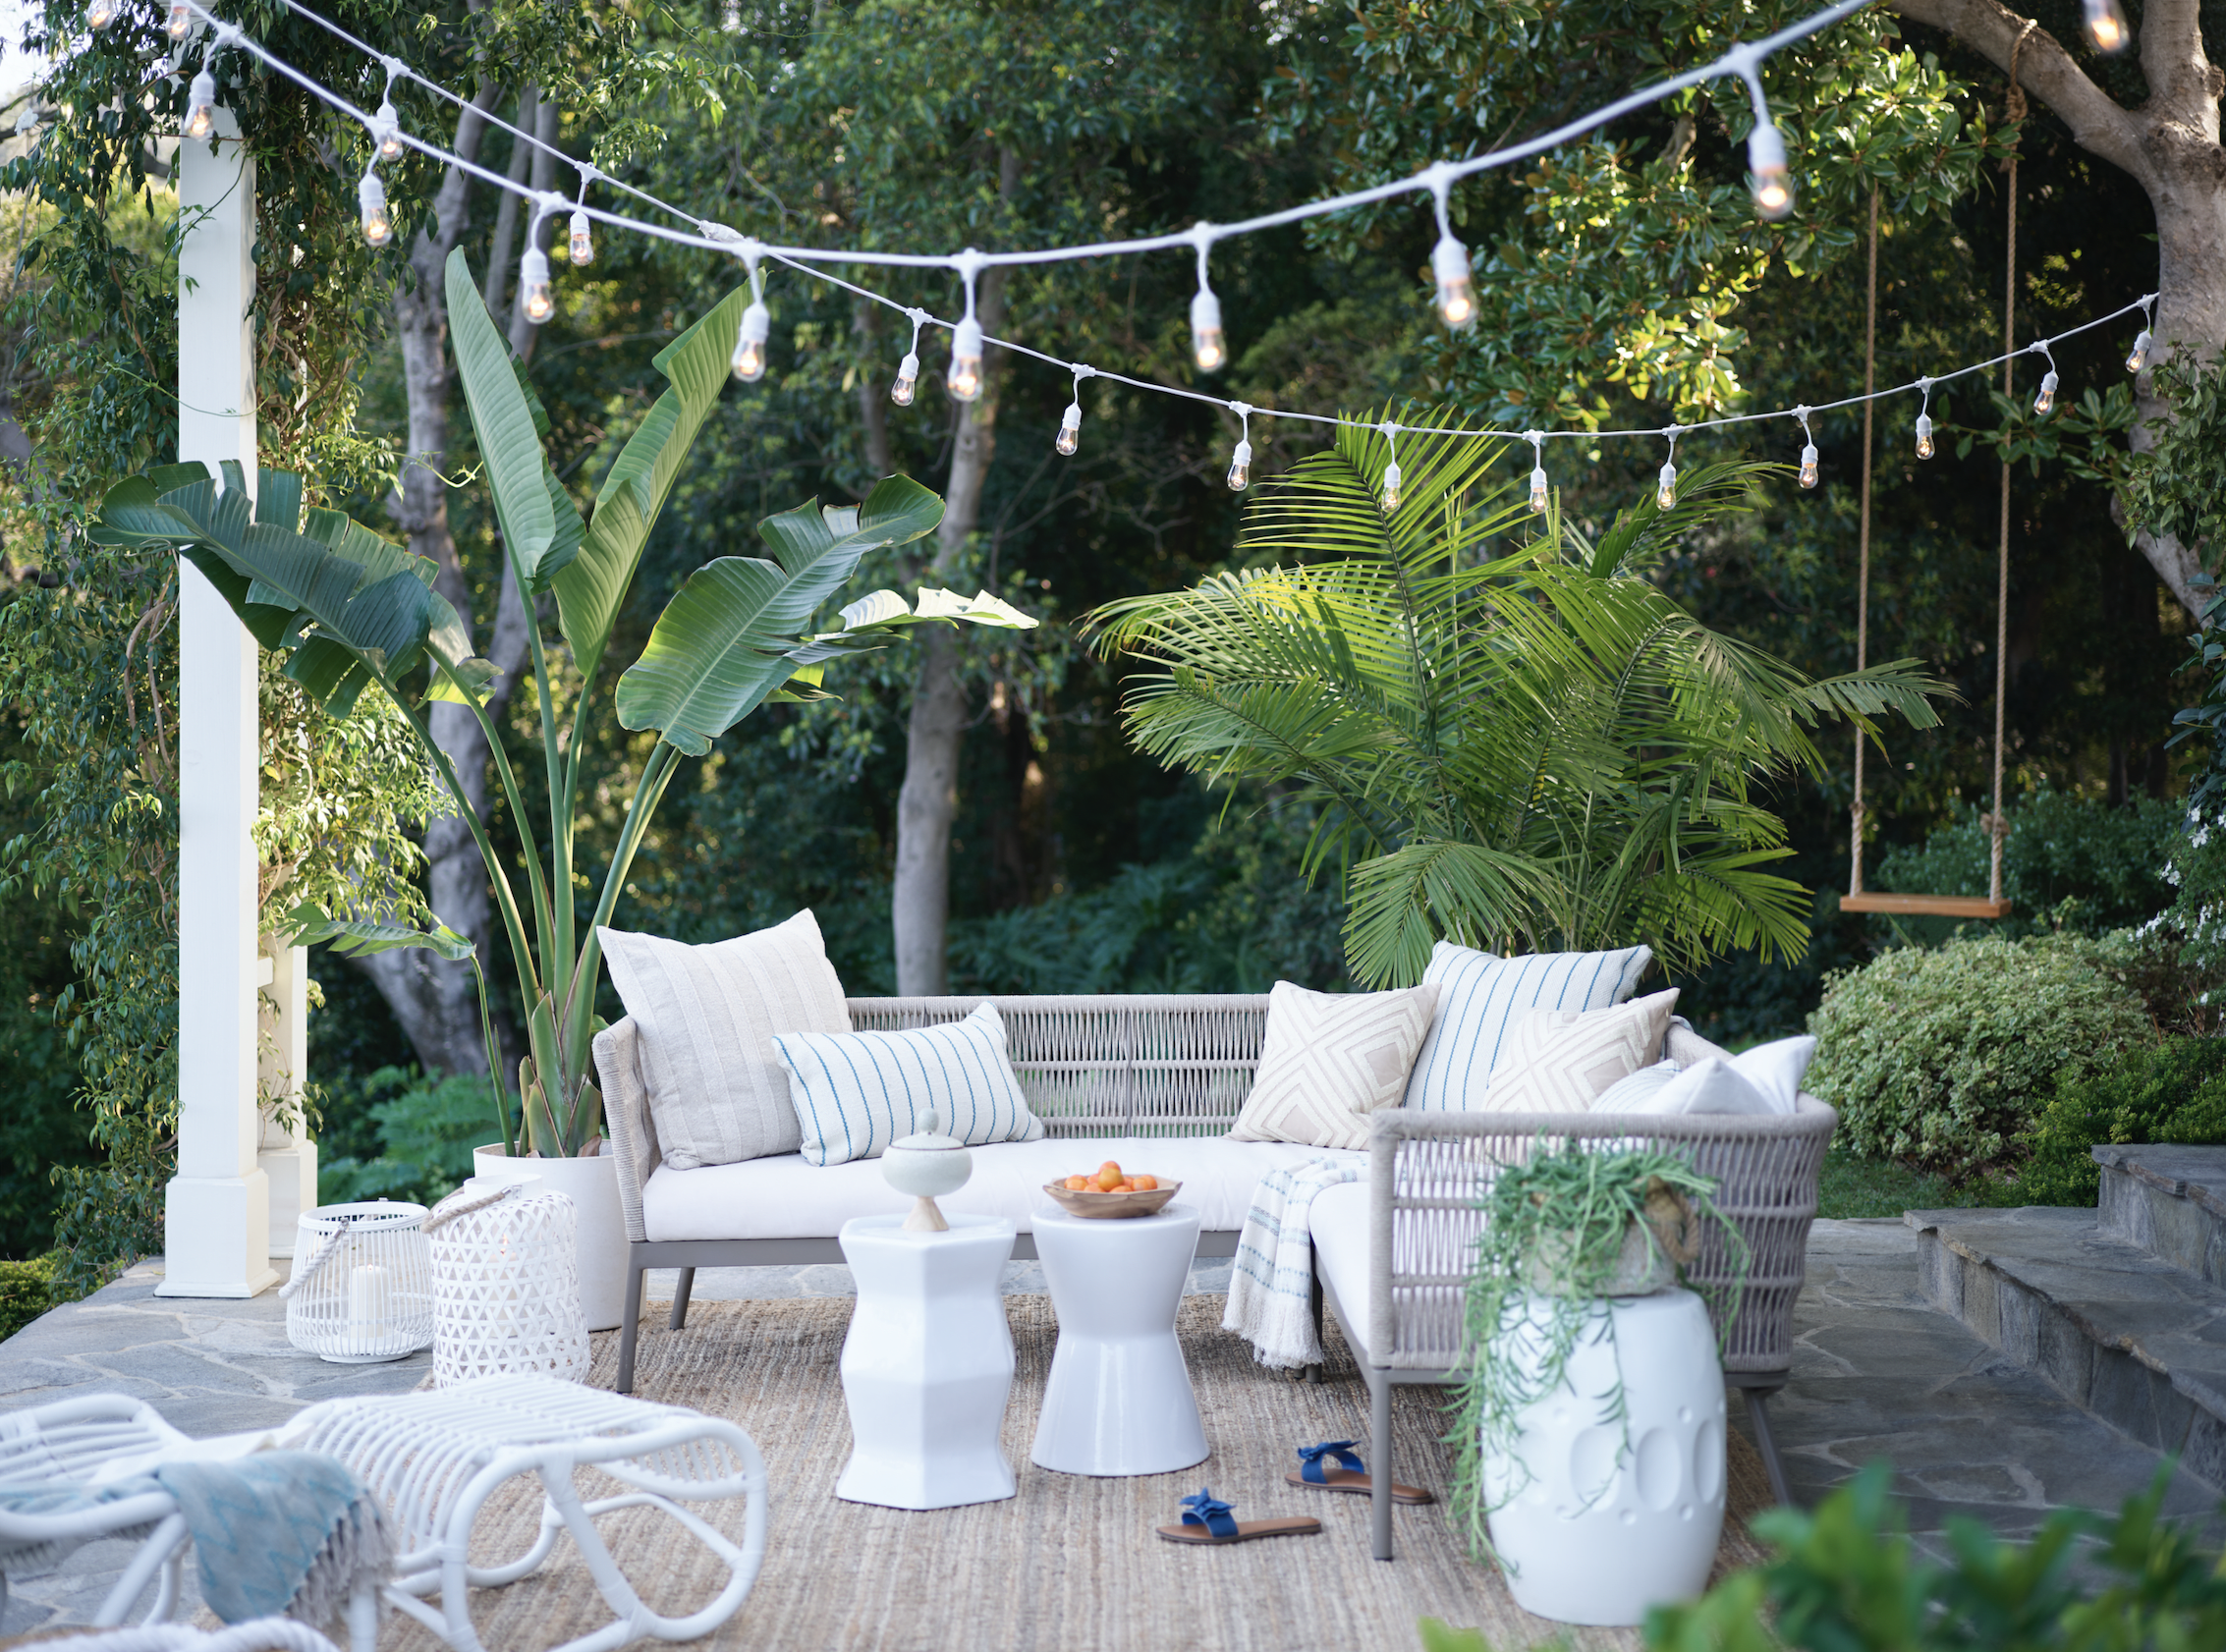 Patio Furniture Essentials For Dining Outdoors All Summer Long